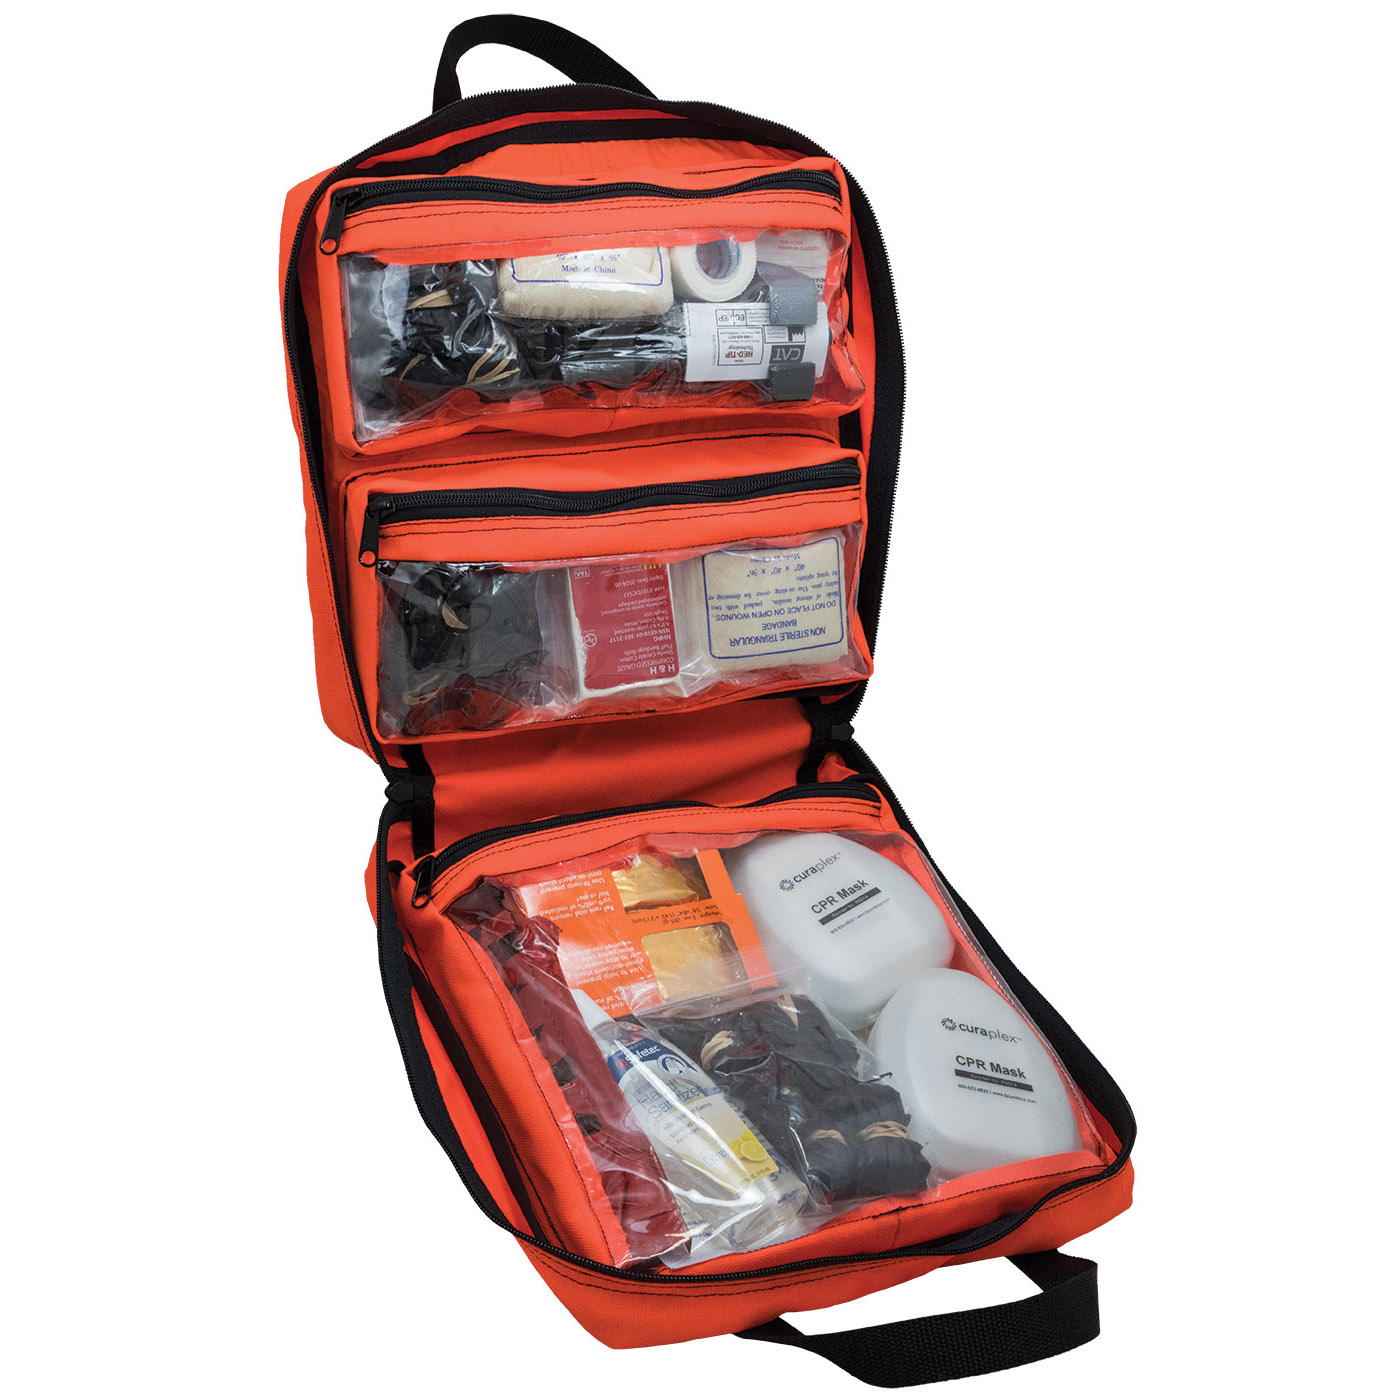 Executive Protection Medical Kit